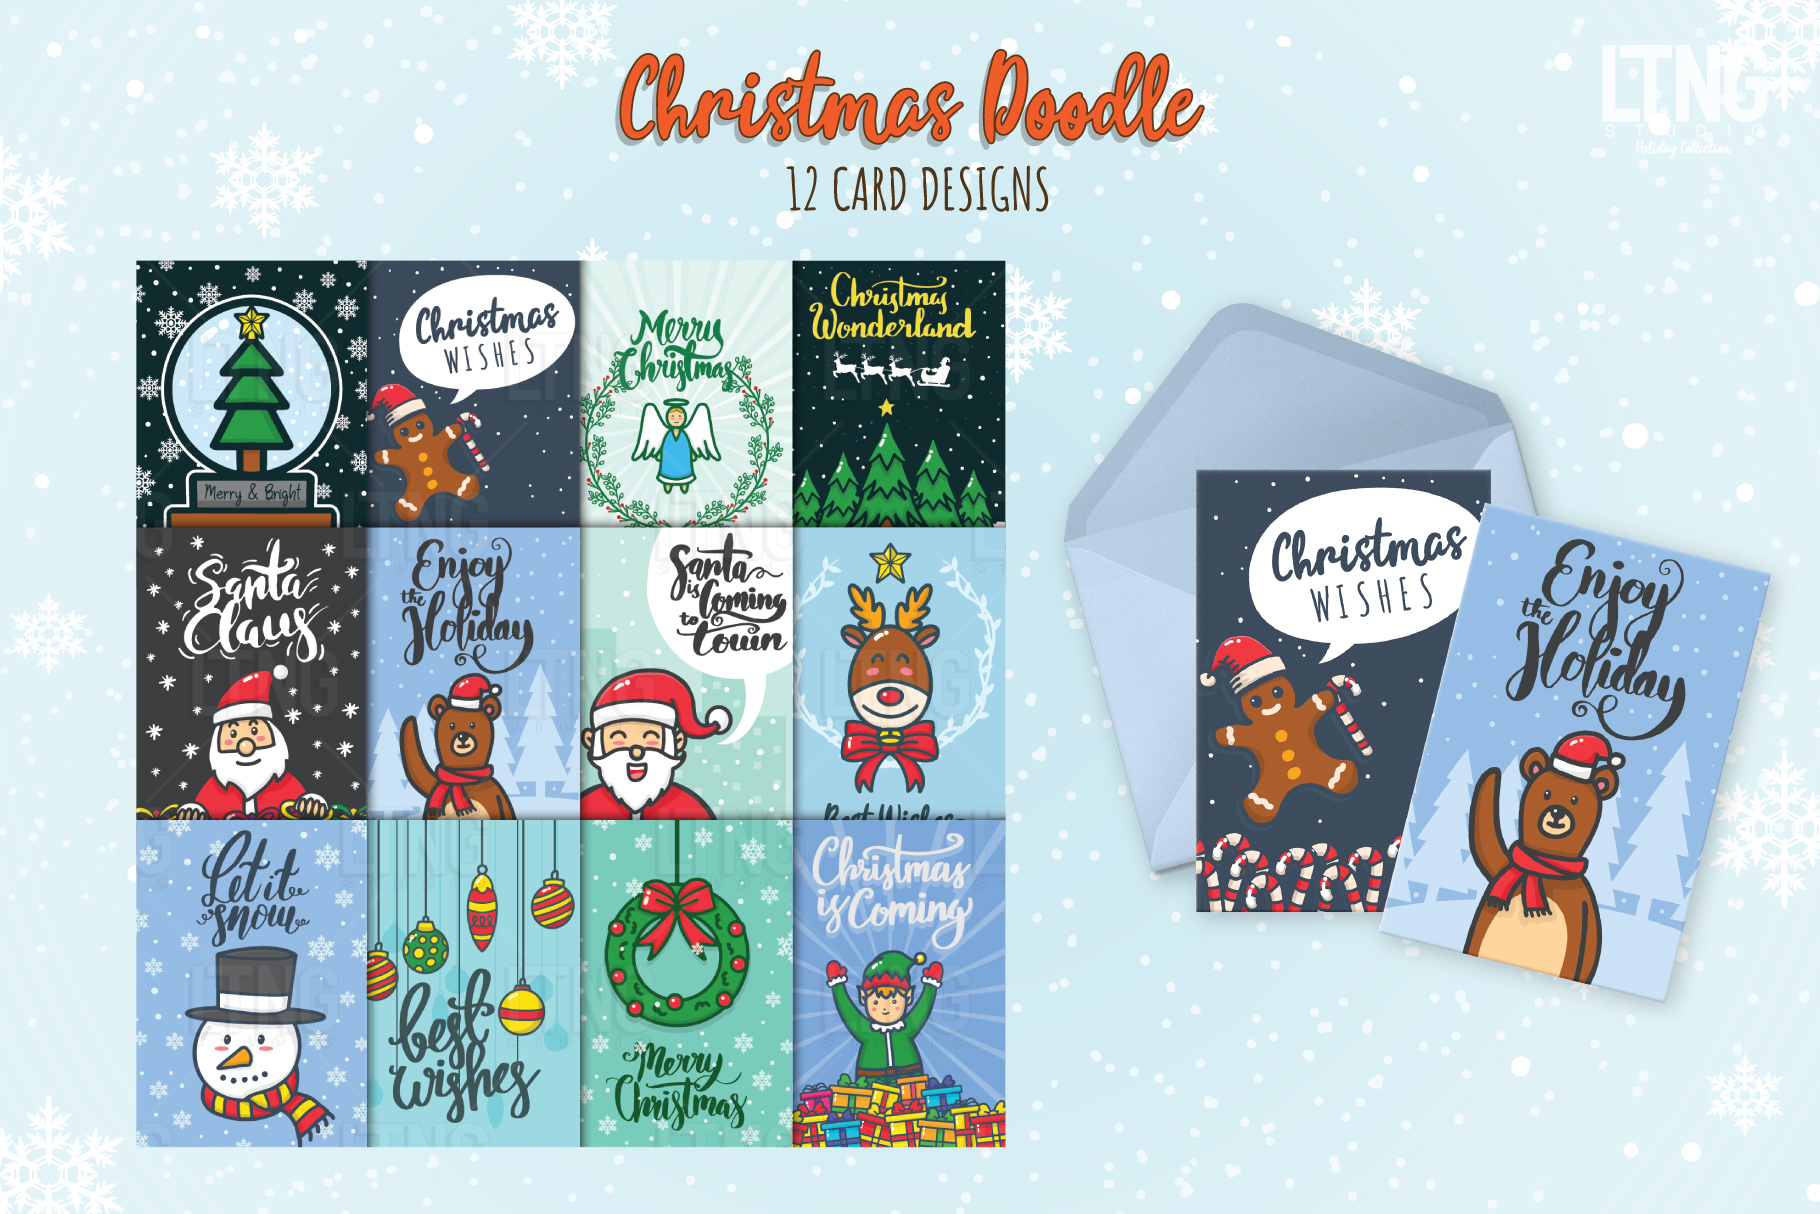 Christmas Doodle Graphic Element Part 1 example image 4